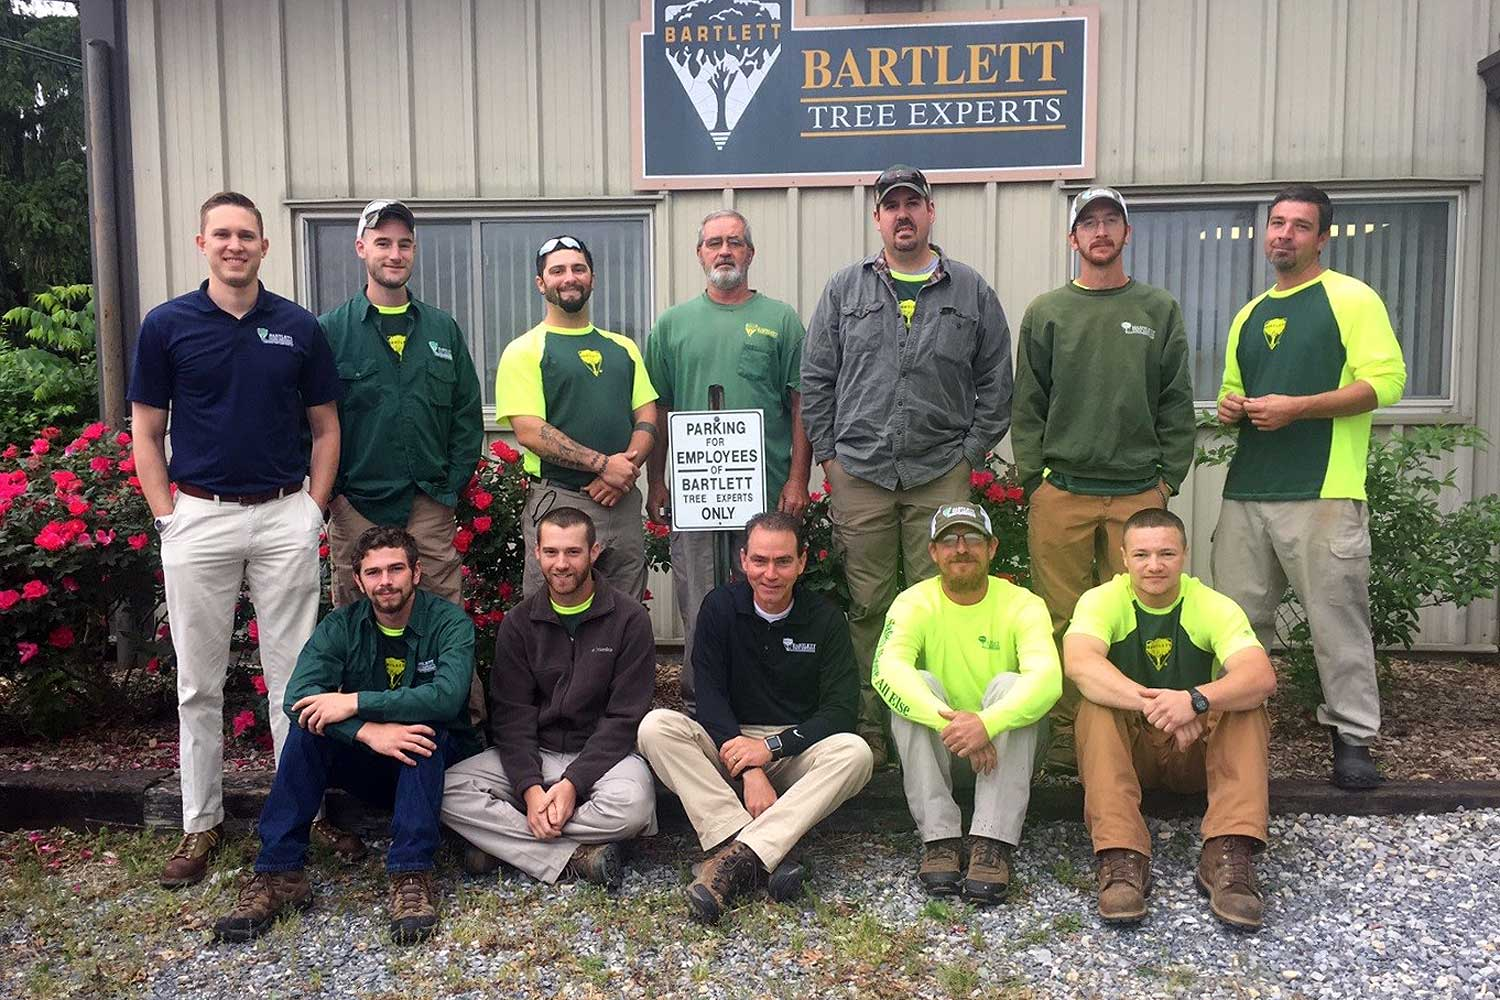 bartlett tree experts  tree service and shrub care in chambersburg  pa